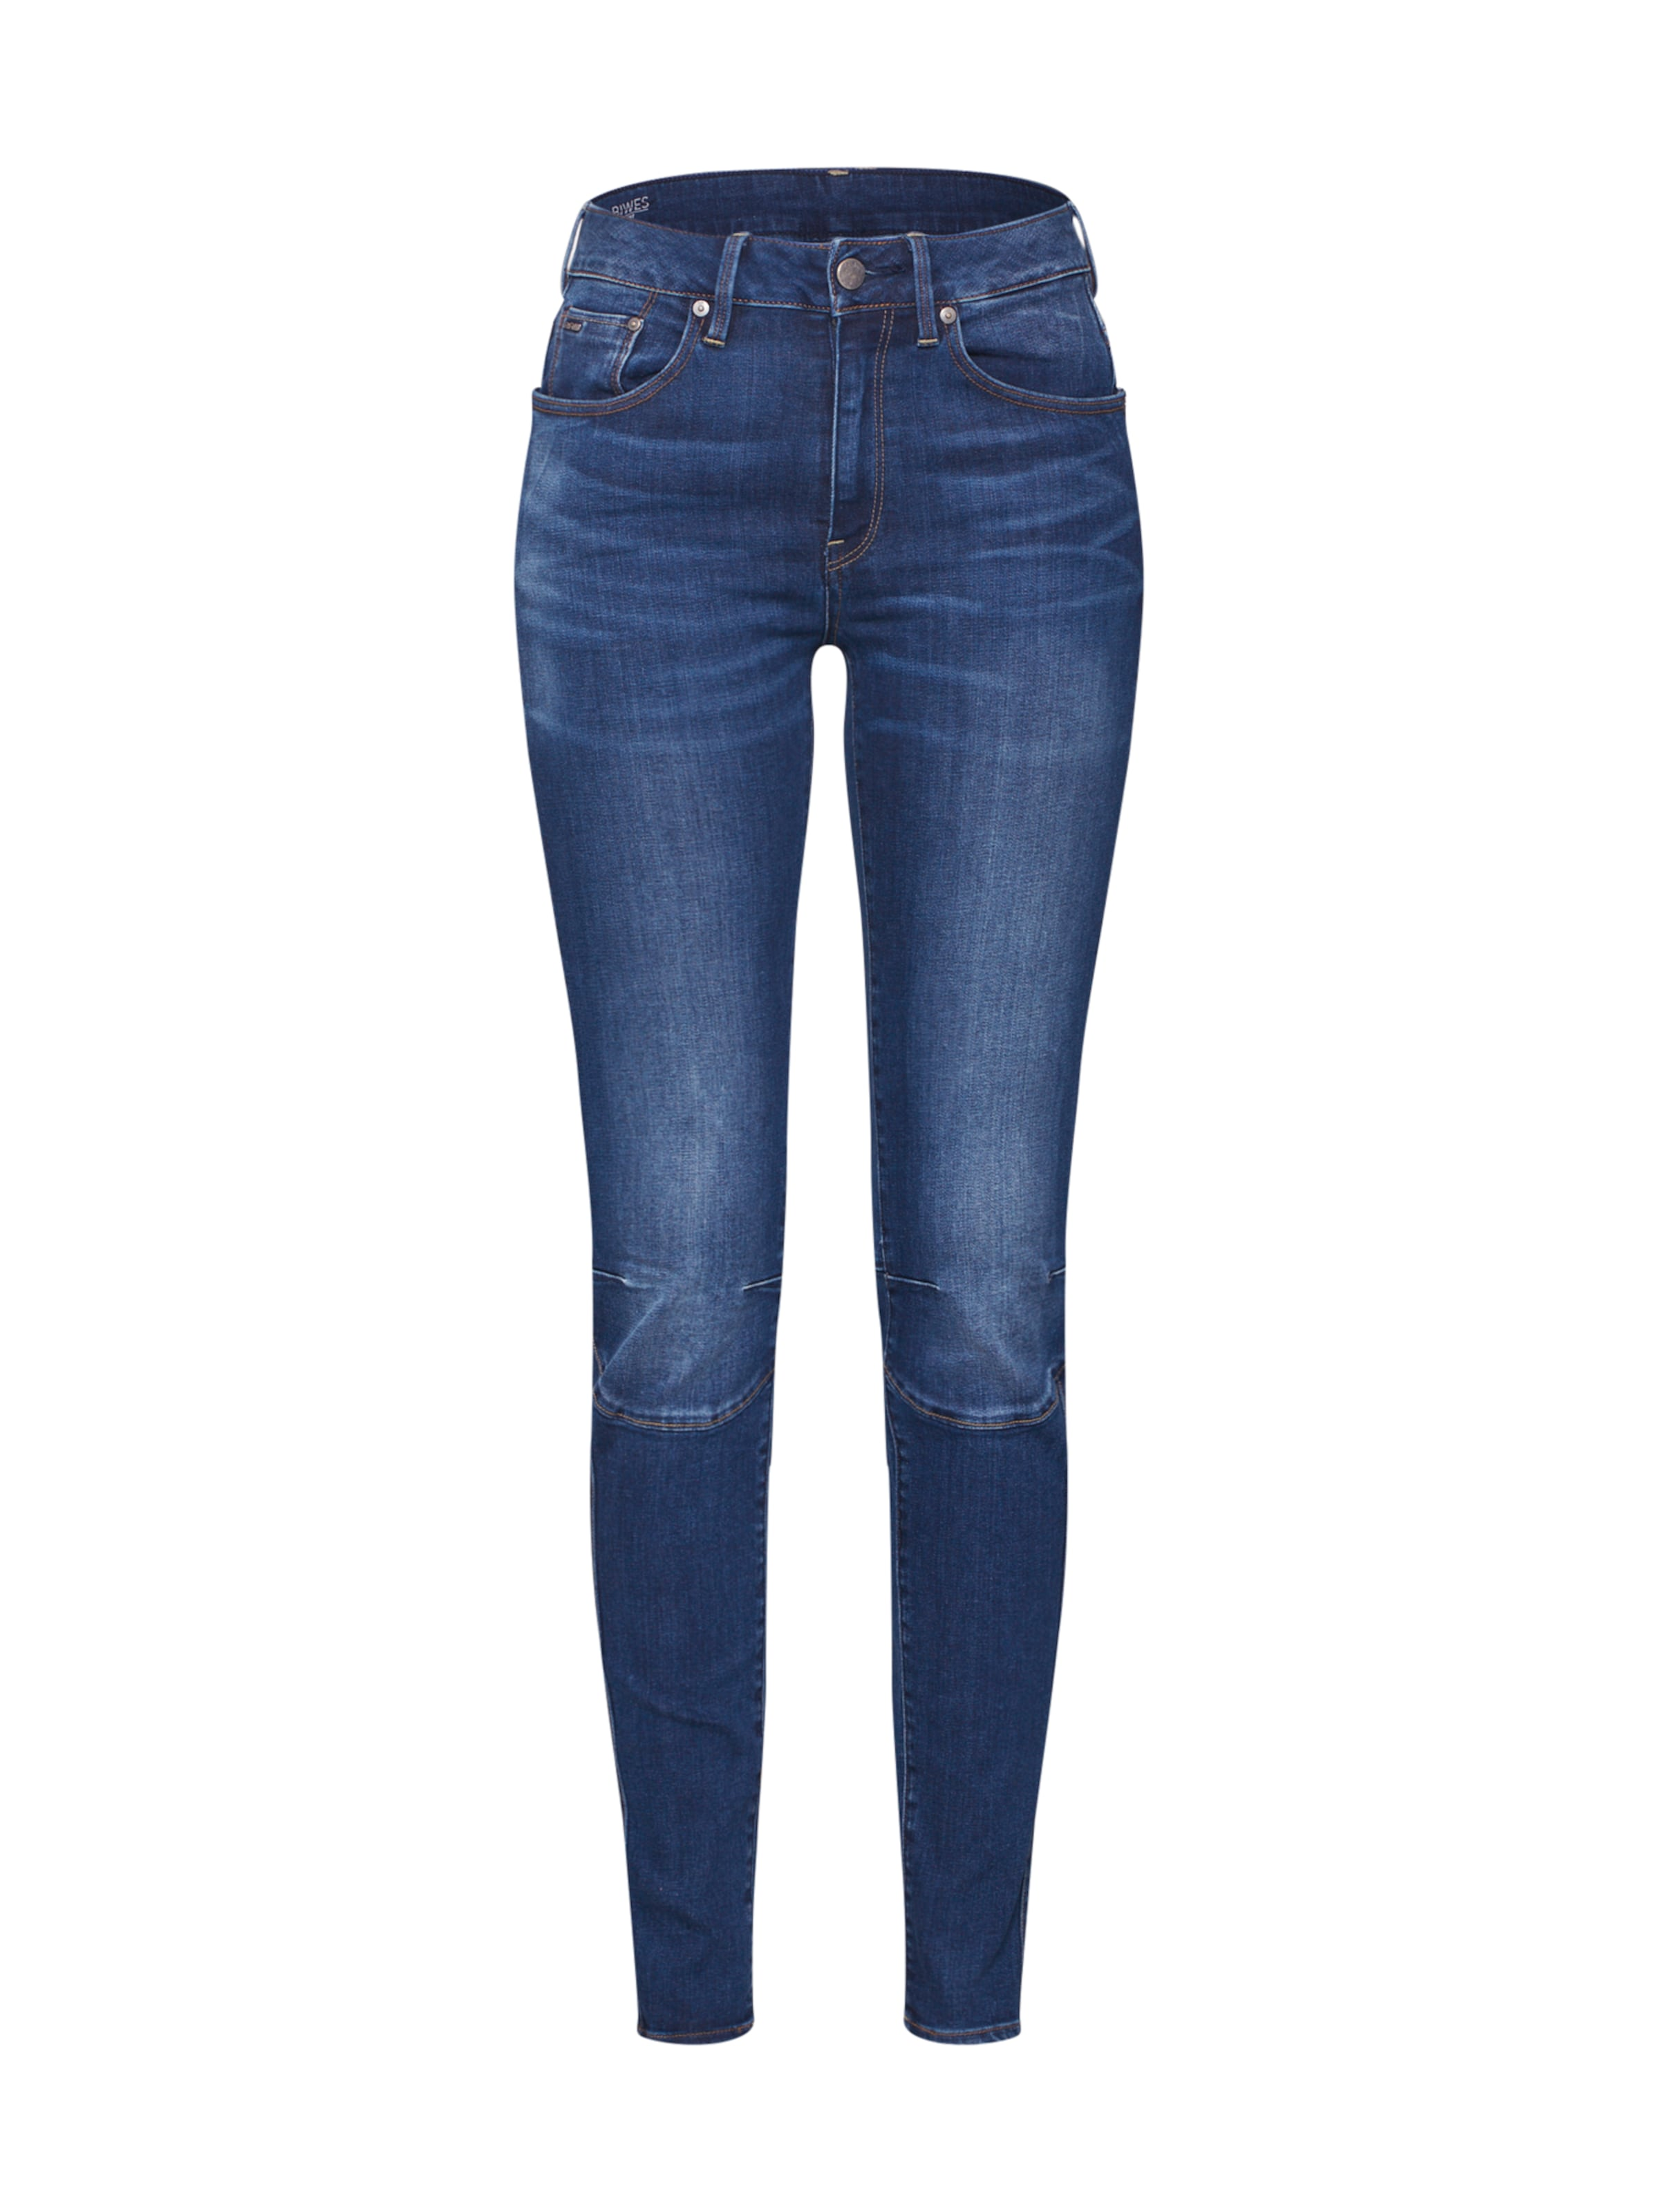 'biwes' En Denim star G Jean Bleu Raw n0vmONw8